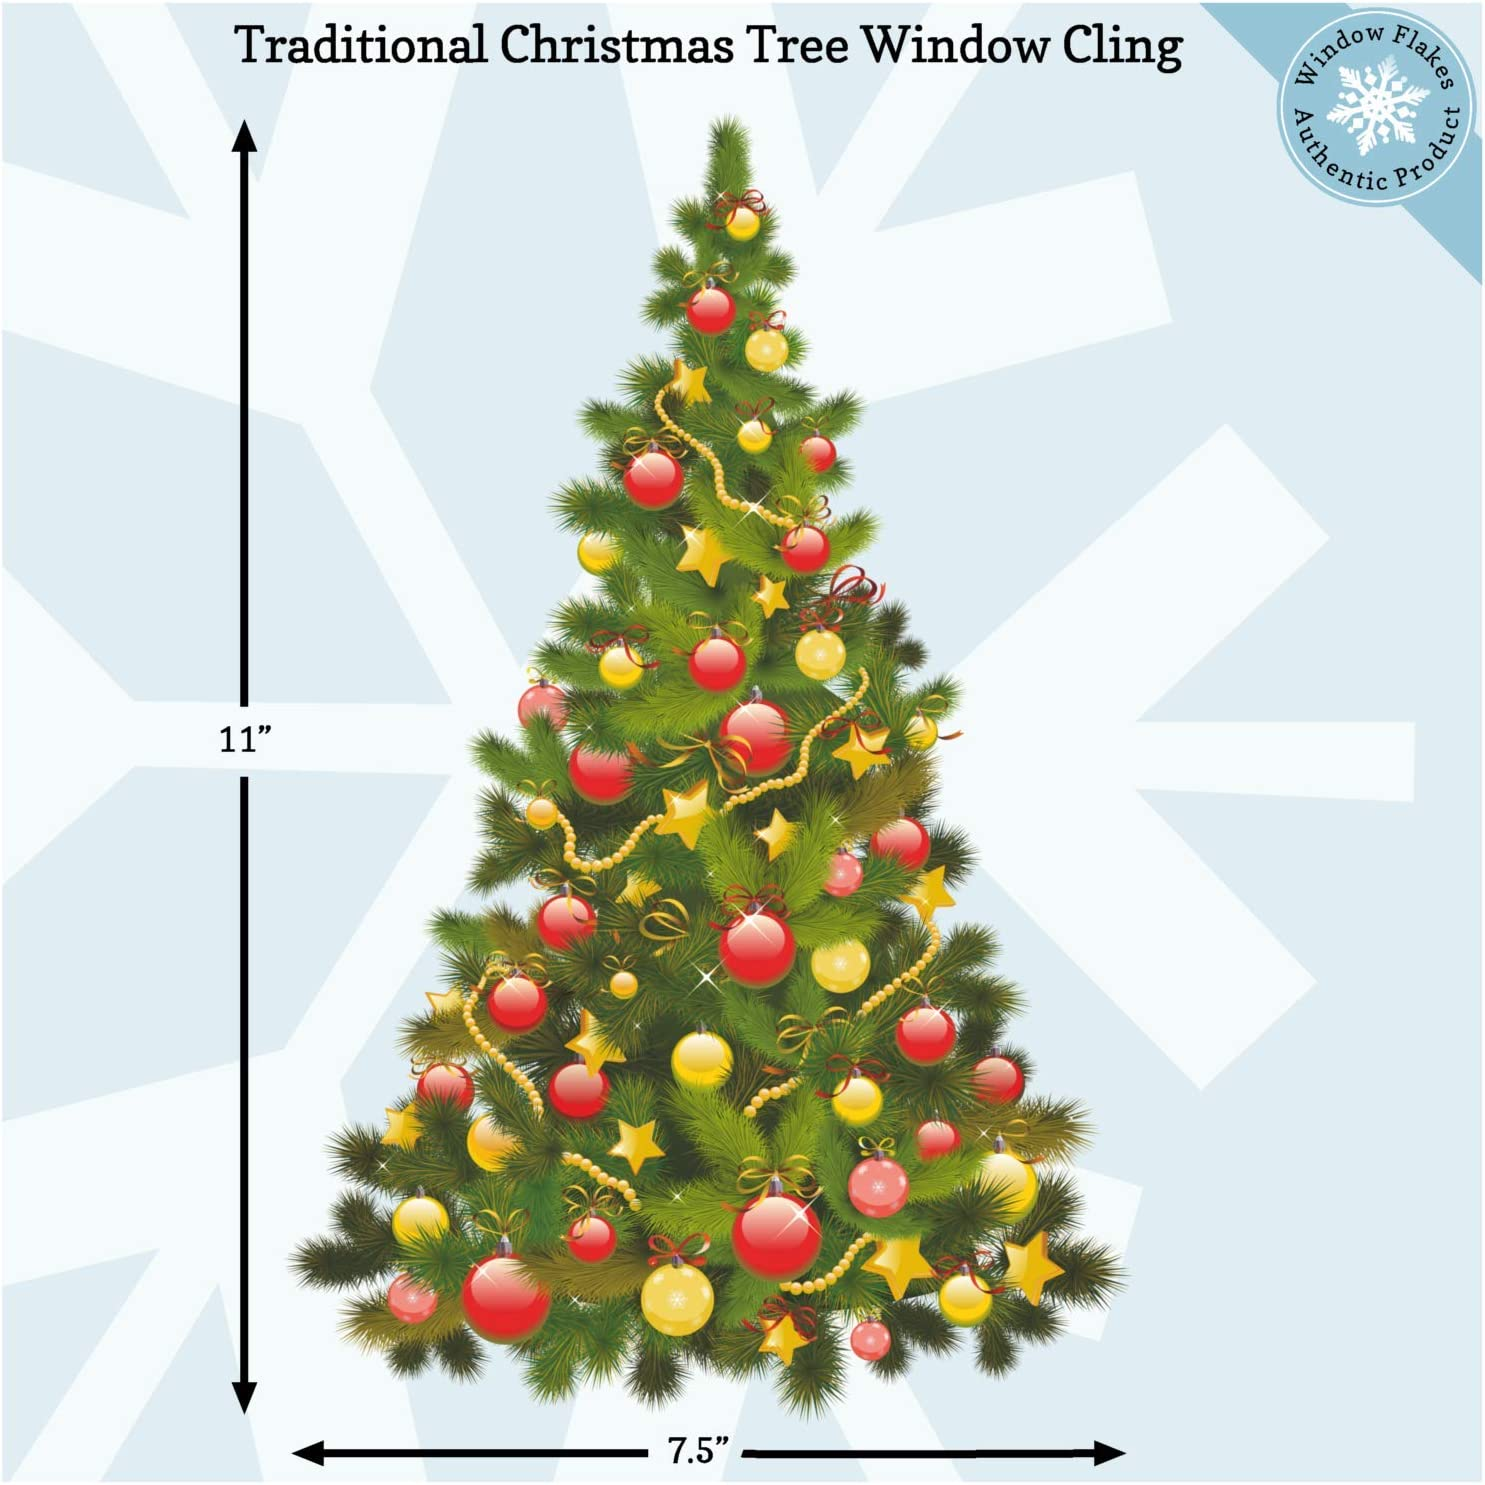 Christmas Window Clings Christmas Tree with Baubles Window Decorations Reusable Non Adhesive Holiday Window and Door Décor